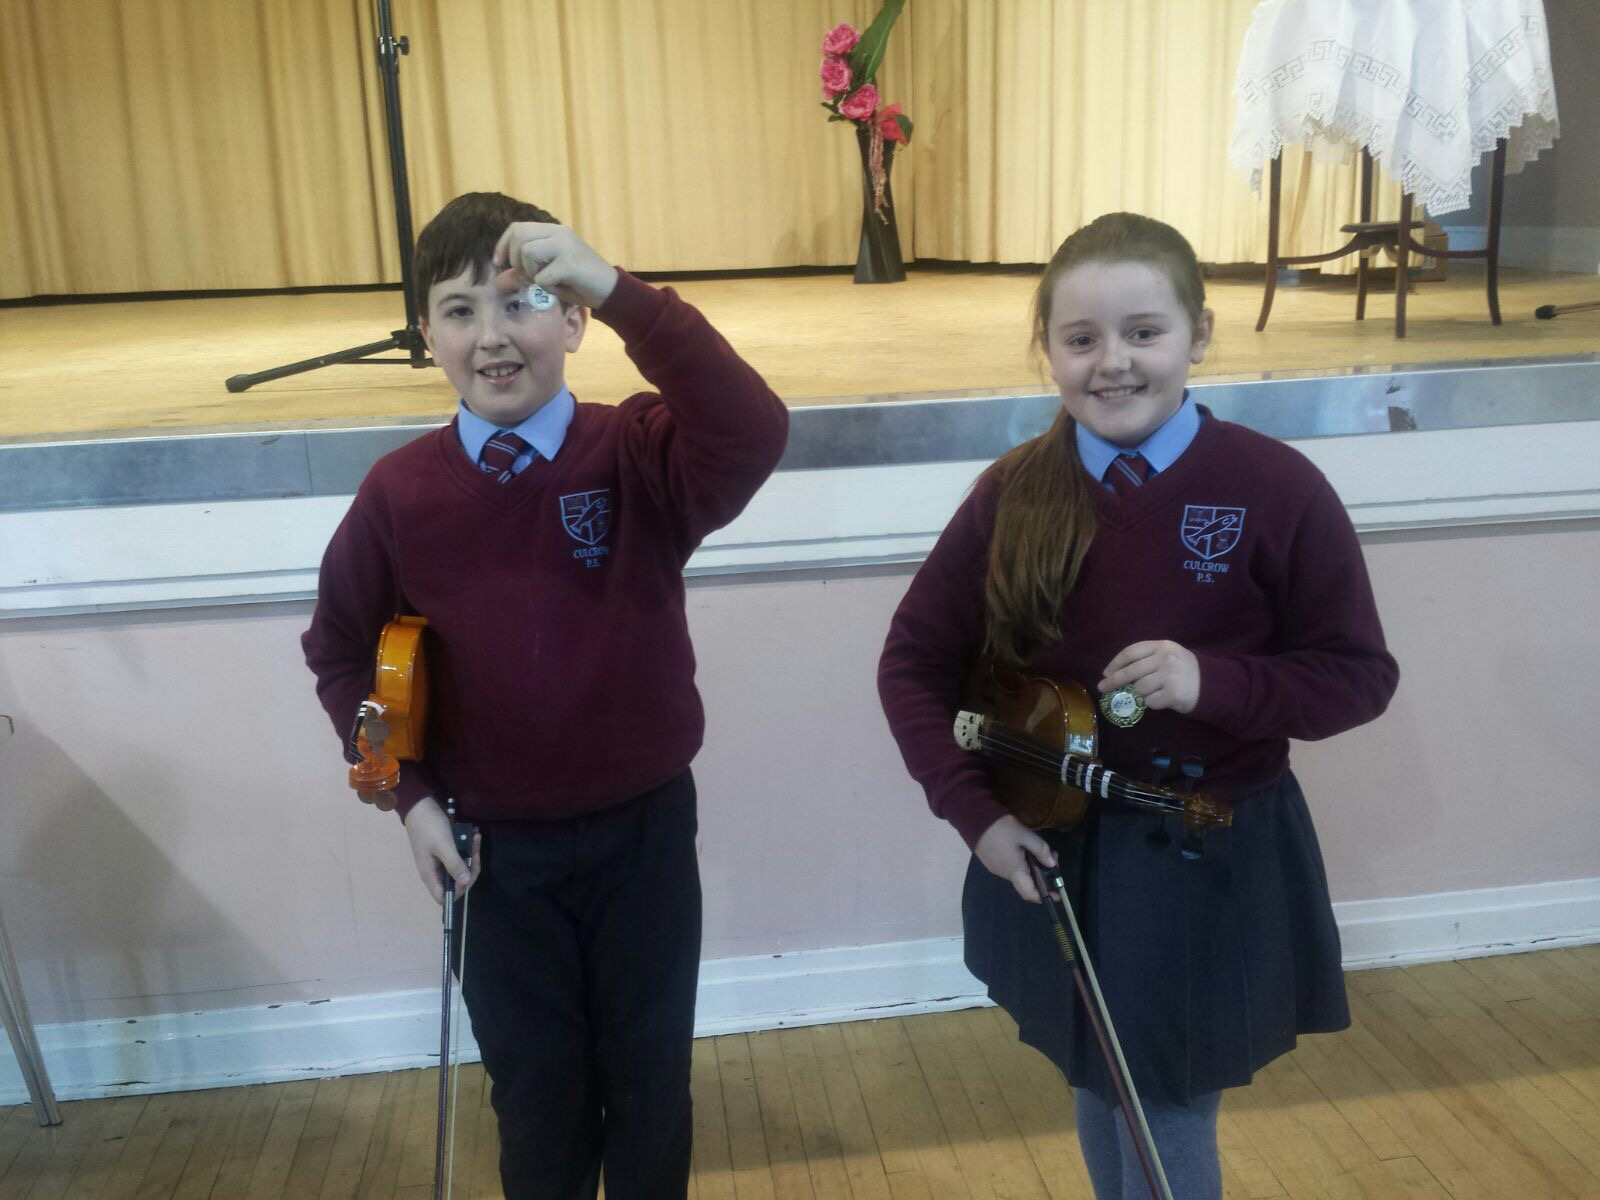 Congratulations to our Violinists, Robert and Sarah!